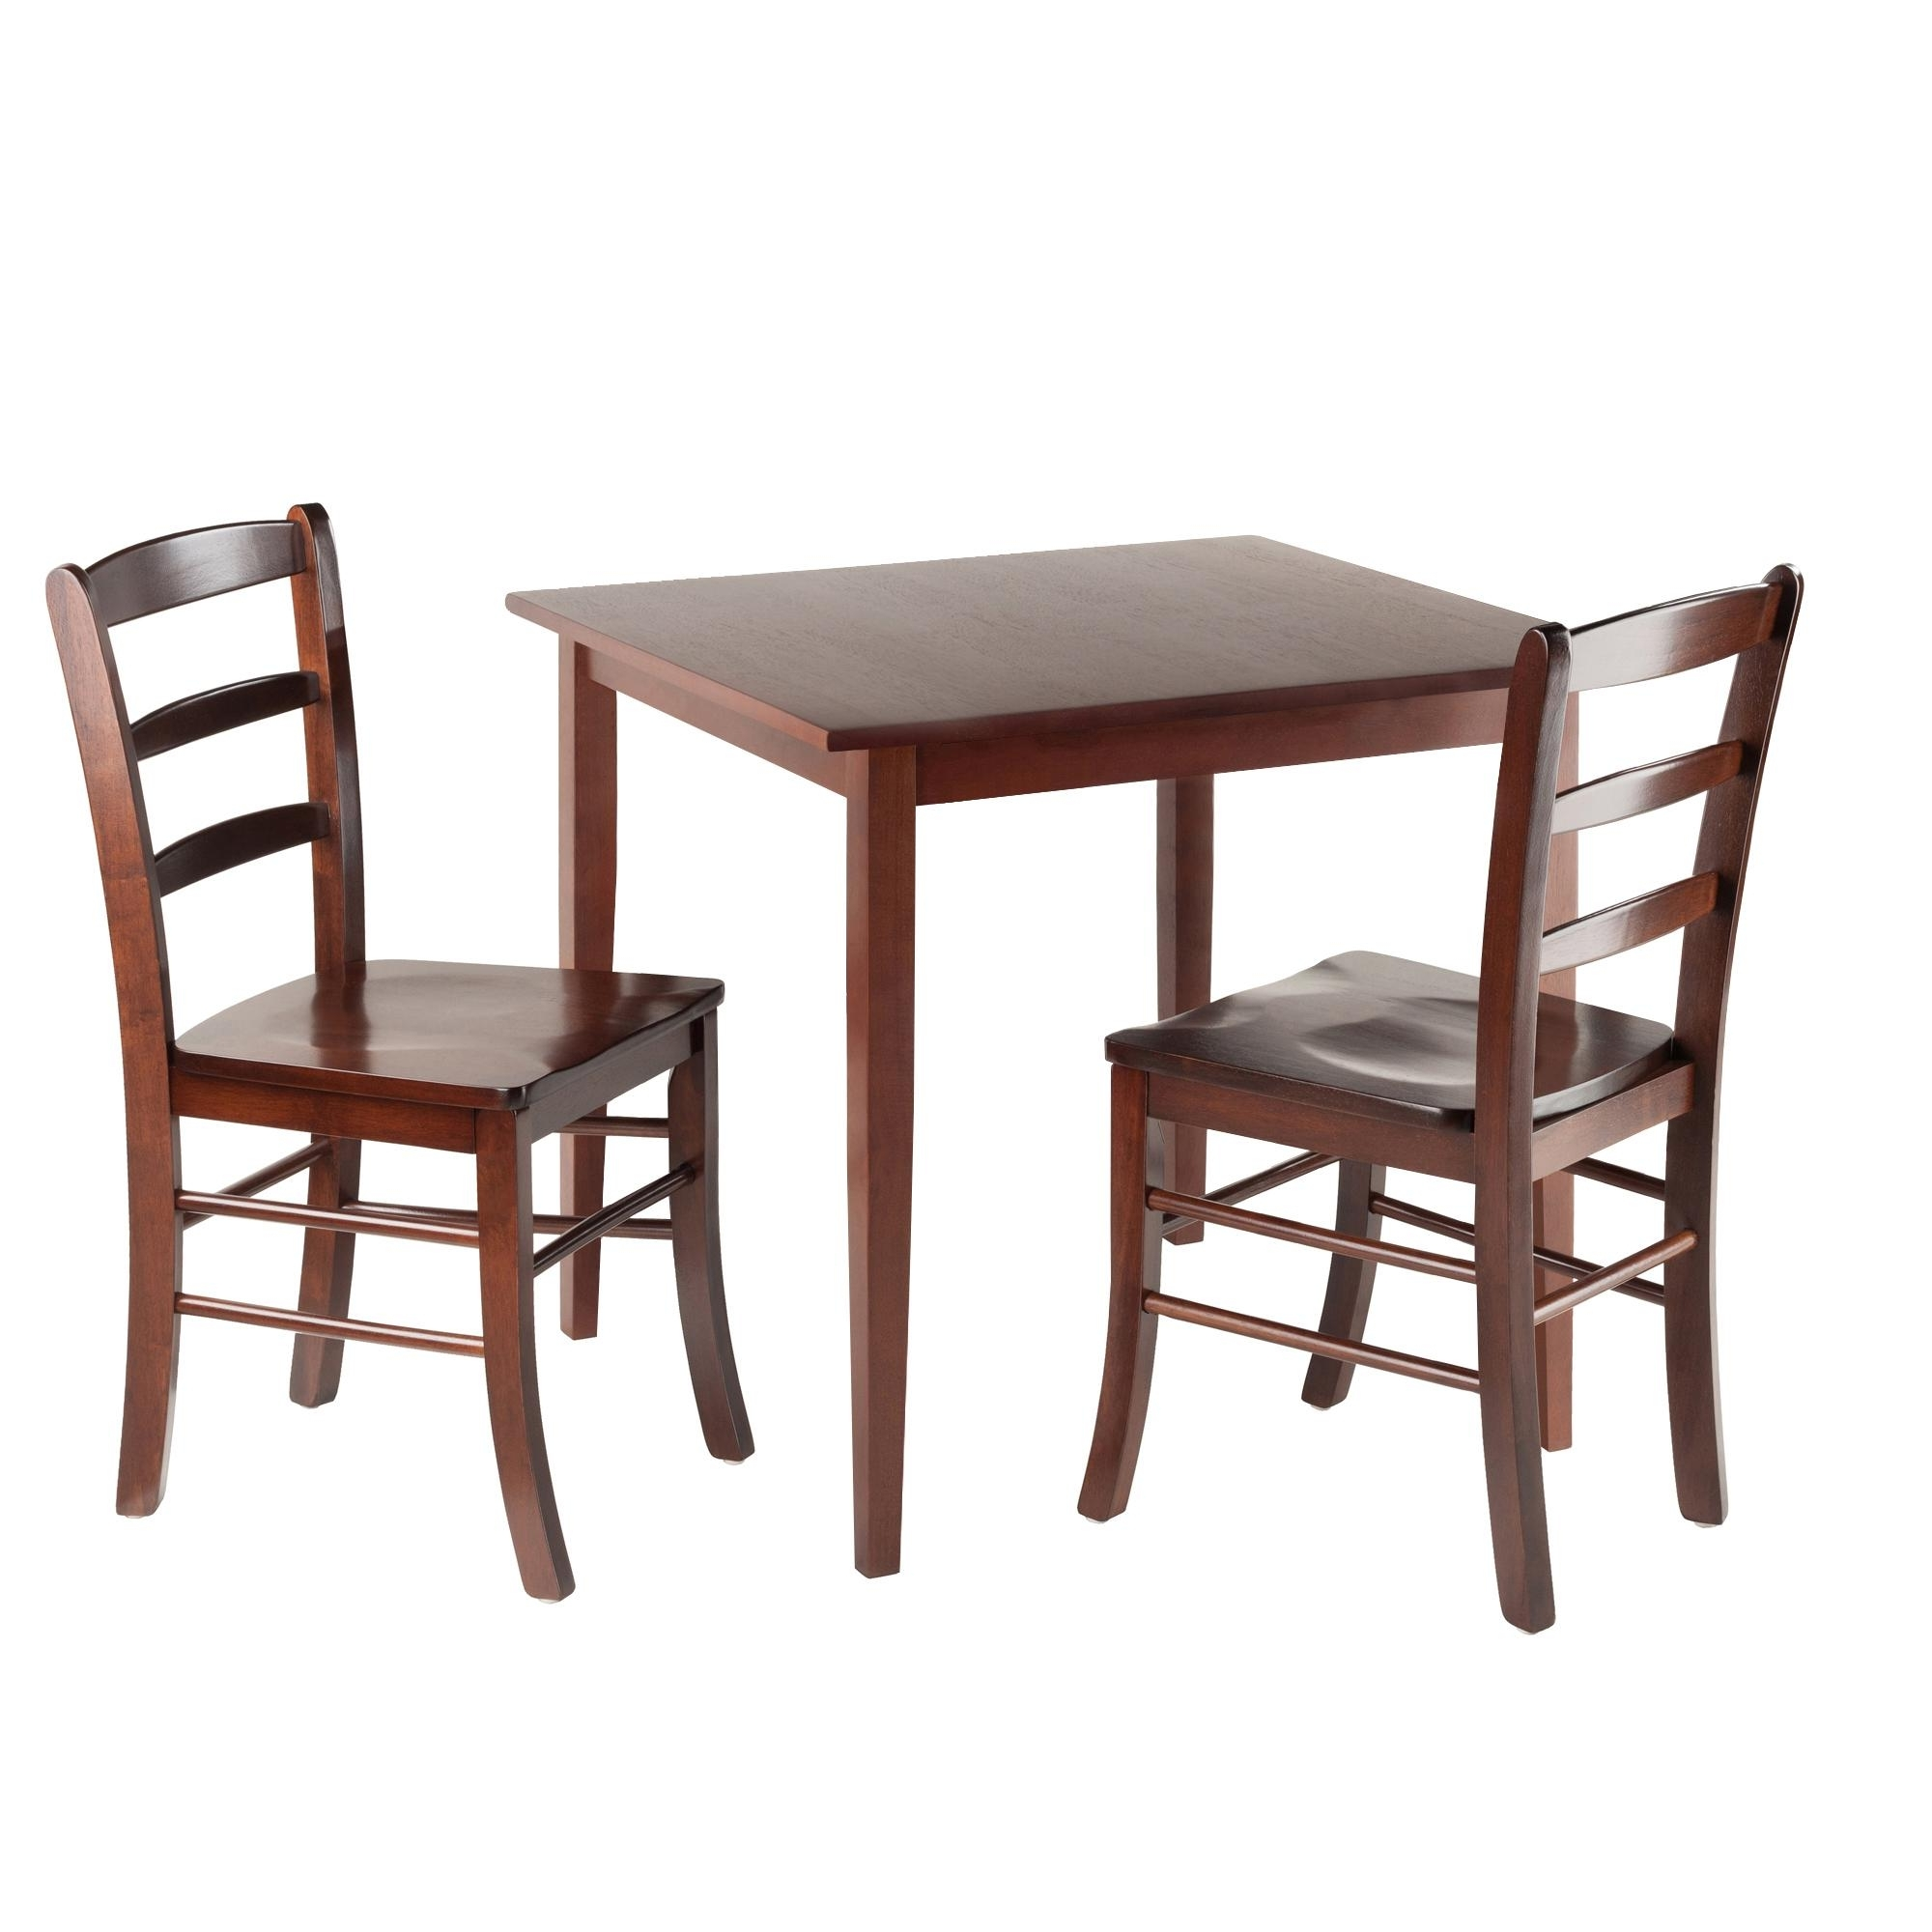 Newest Oak Dining Tables Sets Throughout Amazon – Winsome Groveland Square Dining Table With 2 Chairs,  (View 14 of 25)